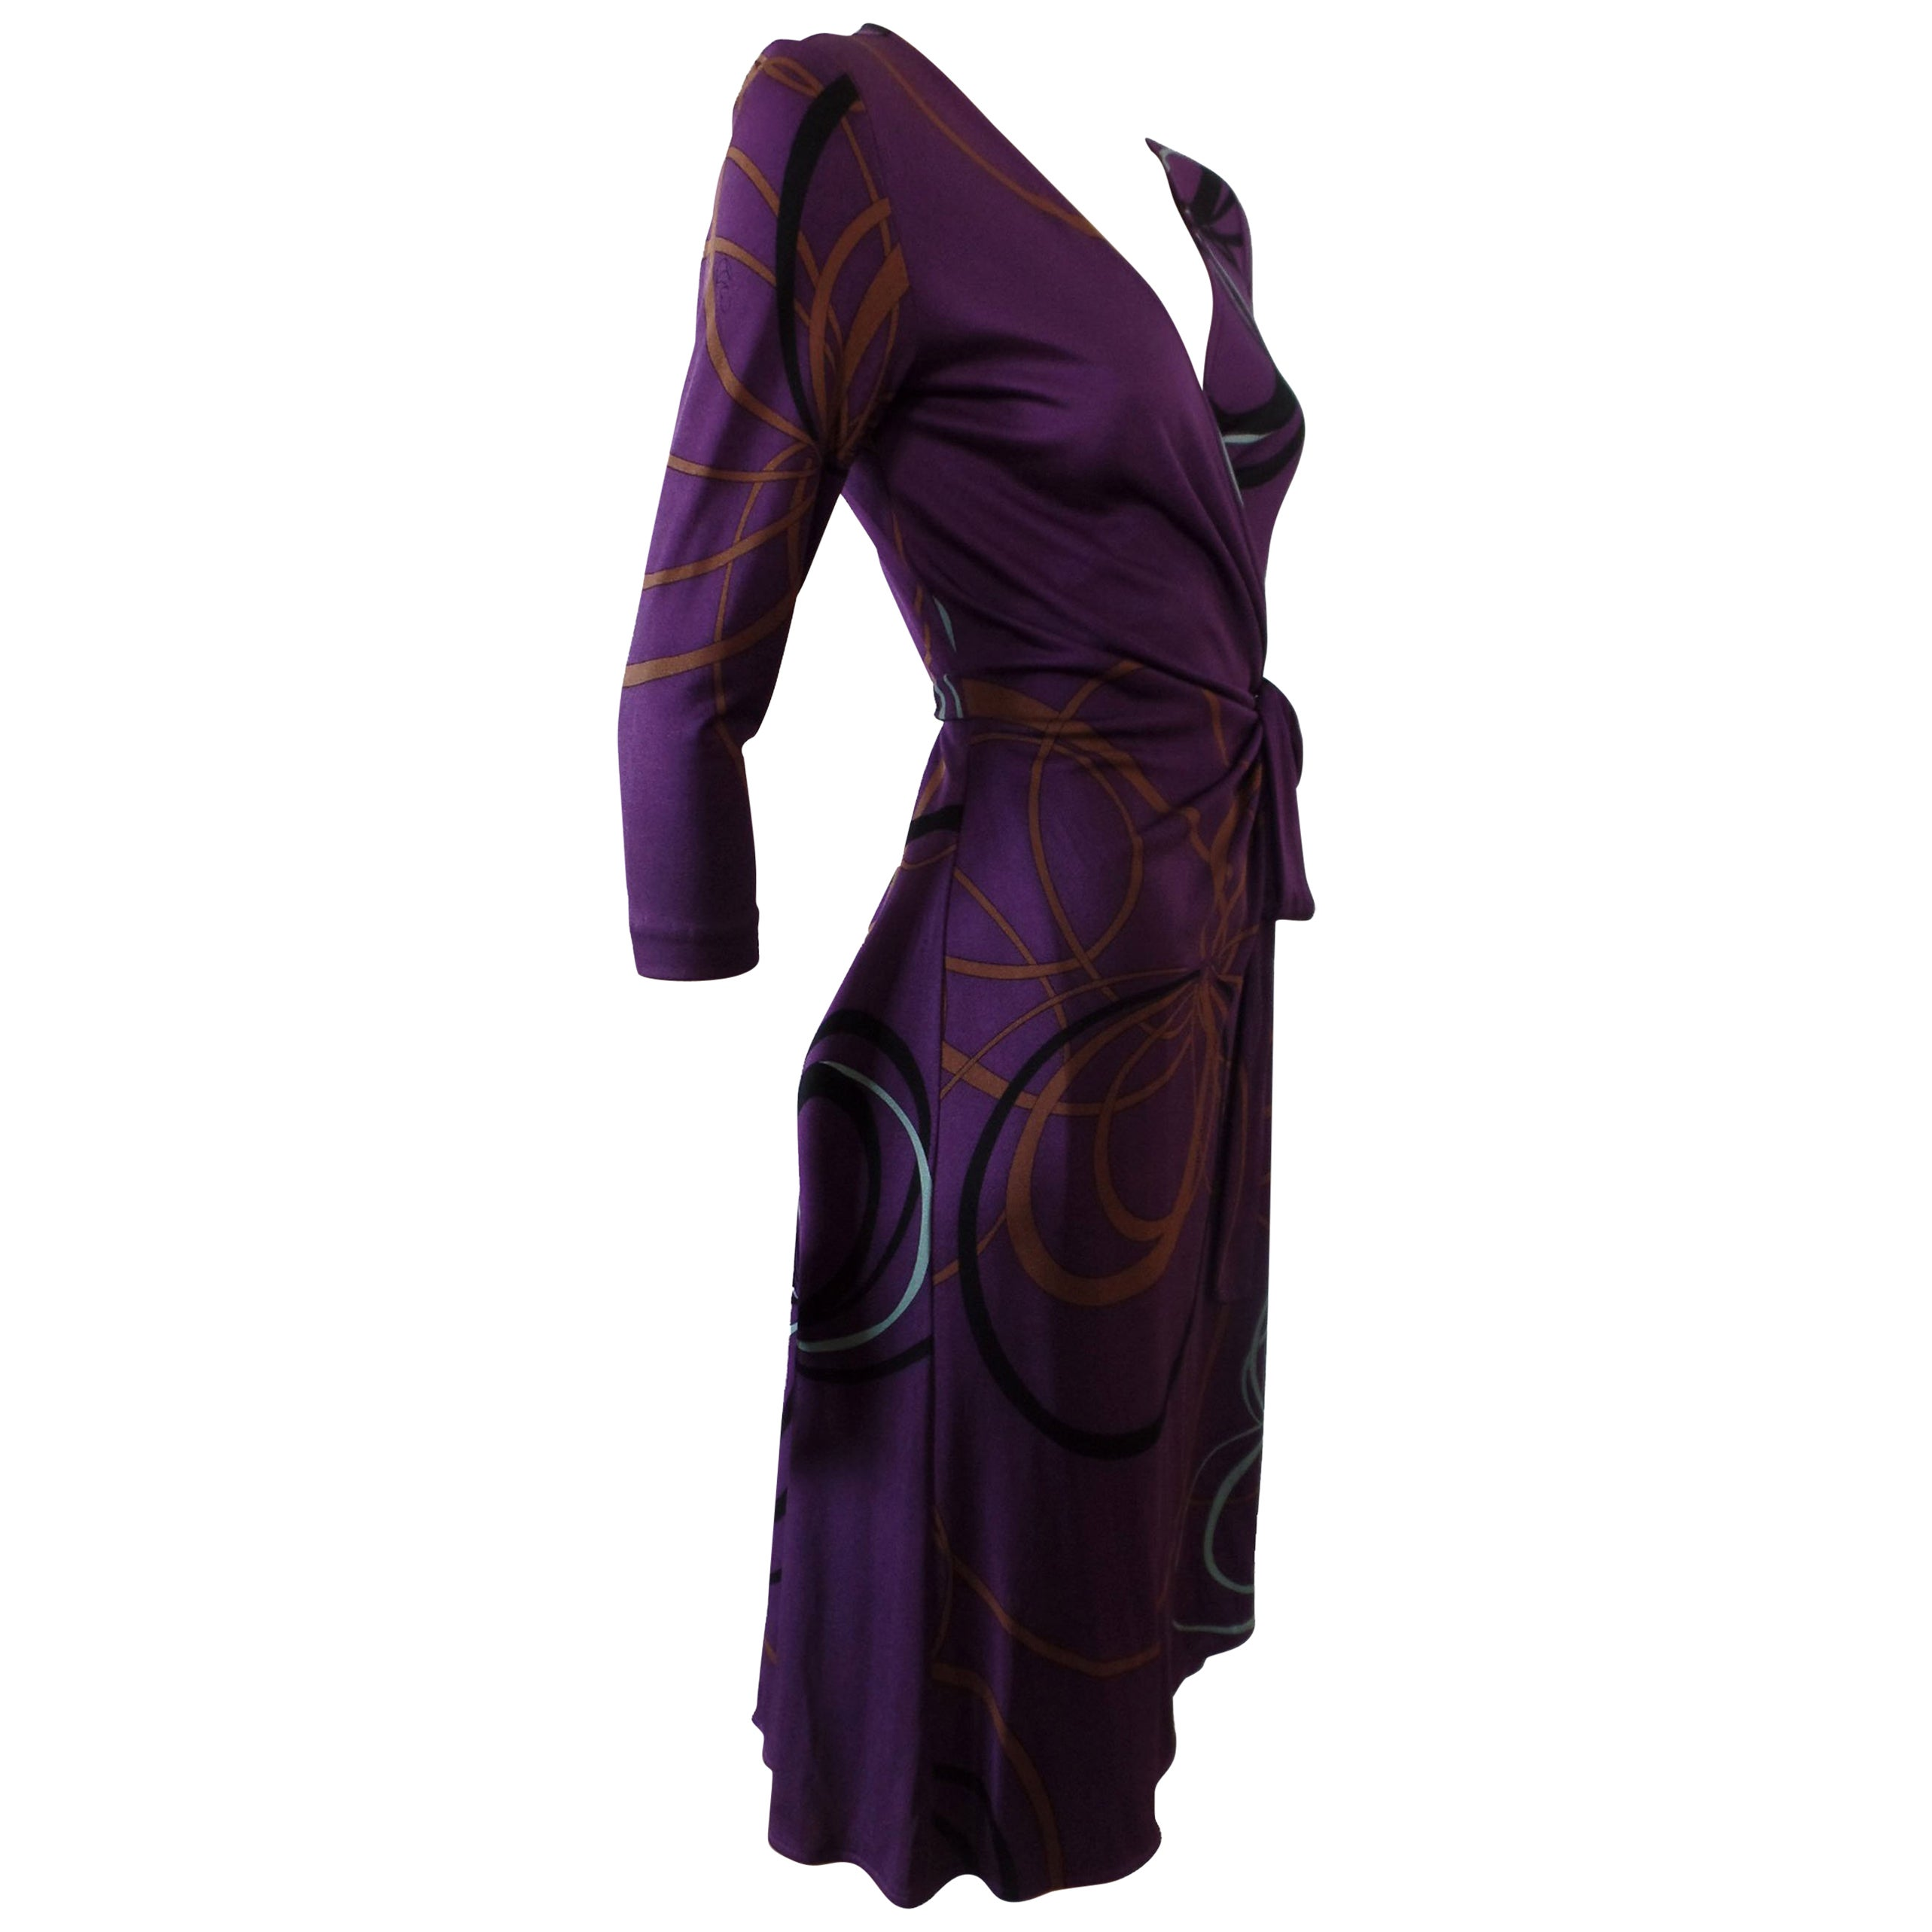 2b8b6f478f Flora Kung Purple Plum Silk Jersey Catherine Wrap Dress For Sale at 1stdibs